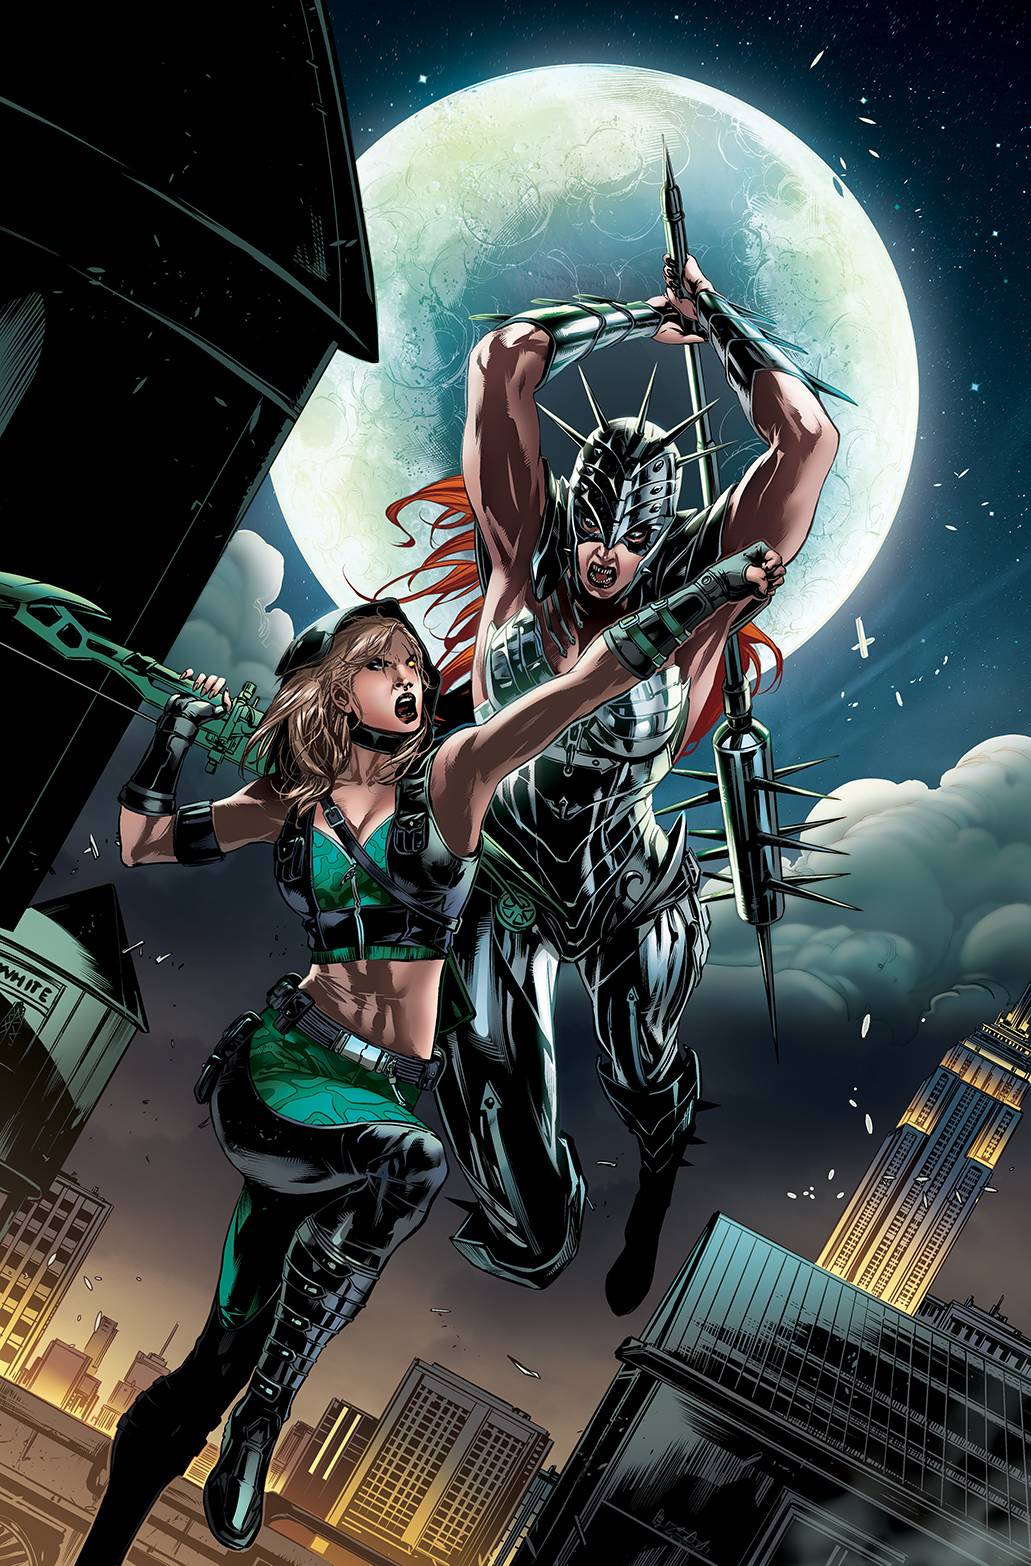 ROBYN HOOD IRON MAIDEN #2 (OF 2) CVR B WHITE